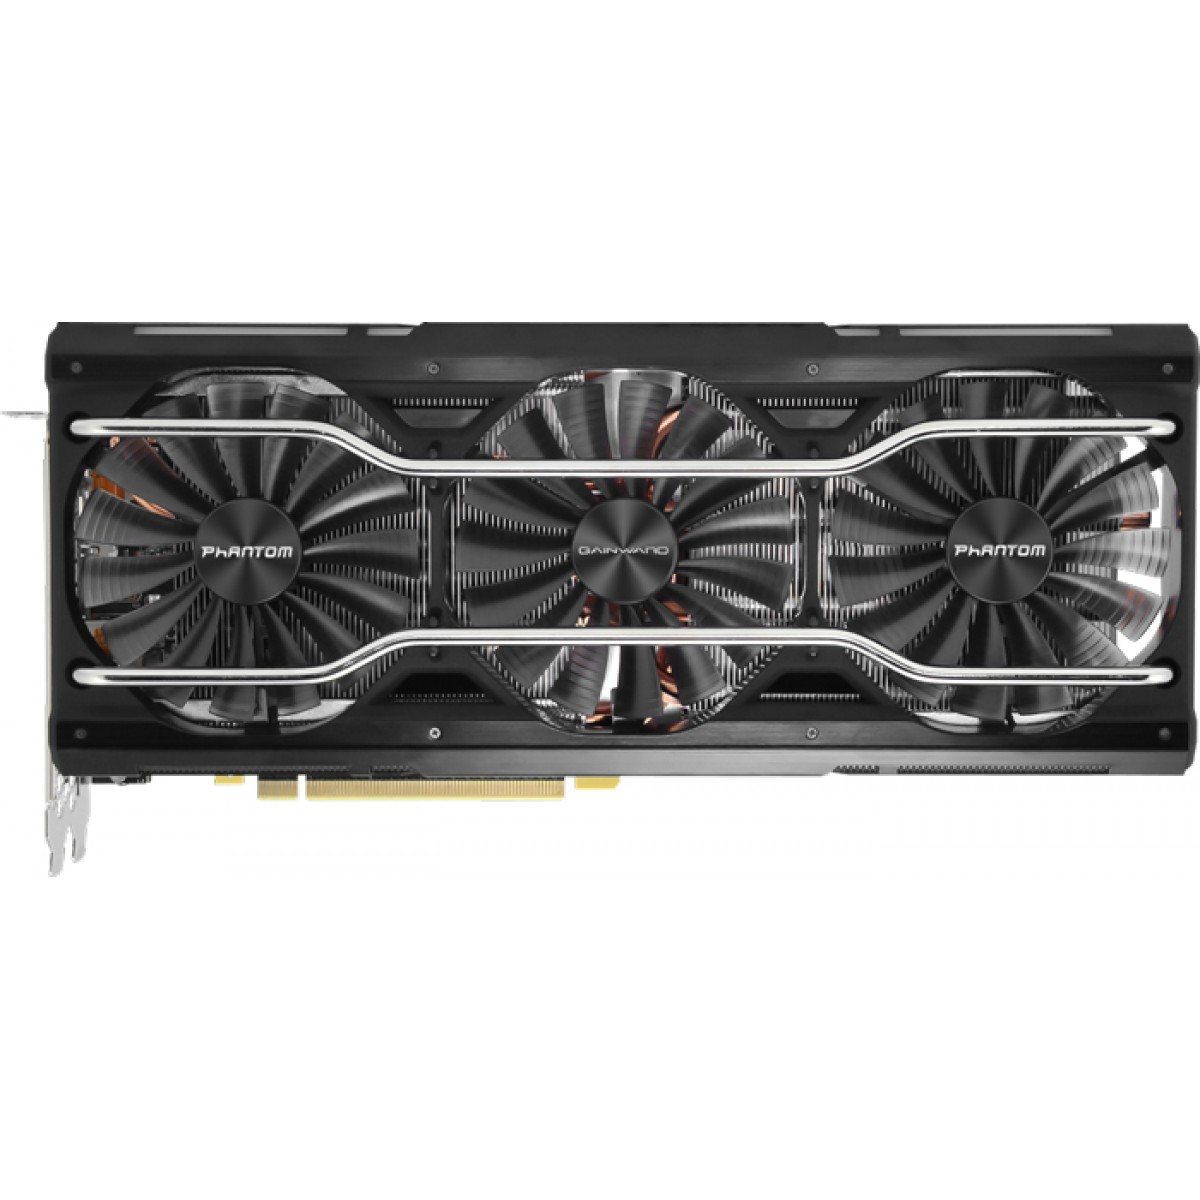 Placa de Vídeo Gainward GeForce RTX 2080 Super Phantom GLH, 8GB GDDR6, 256Bit, GLH-NE6208SH20P2-1040P